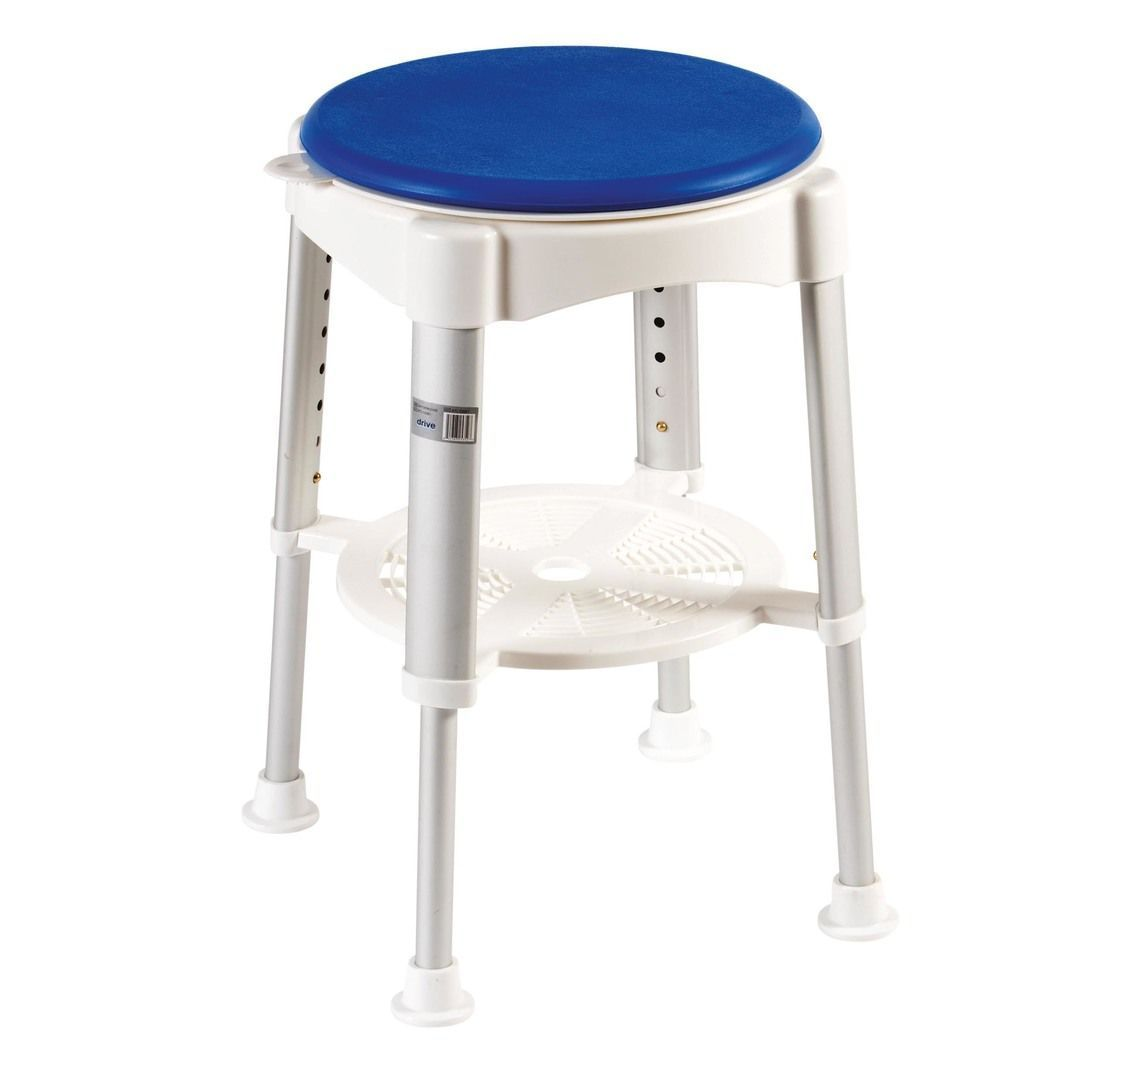 Bath Stool With Rotating Padded Seat Essential Aids Uk